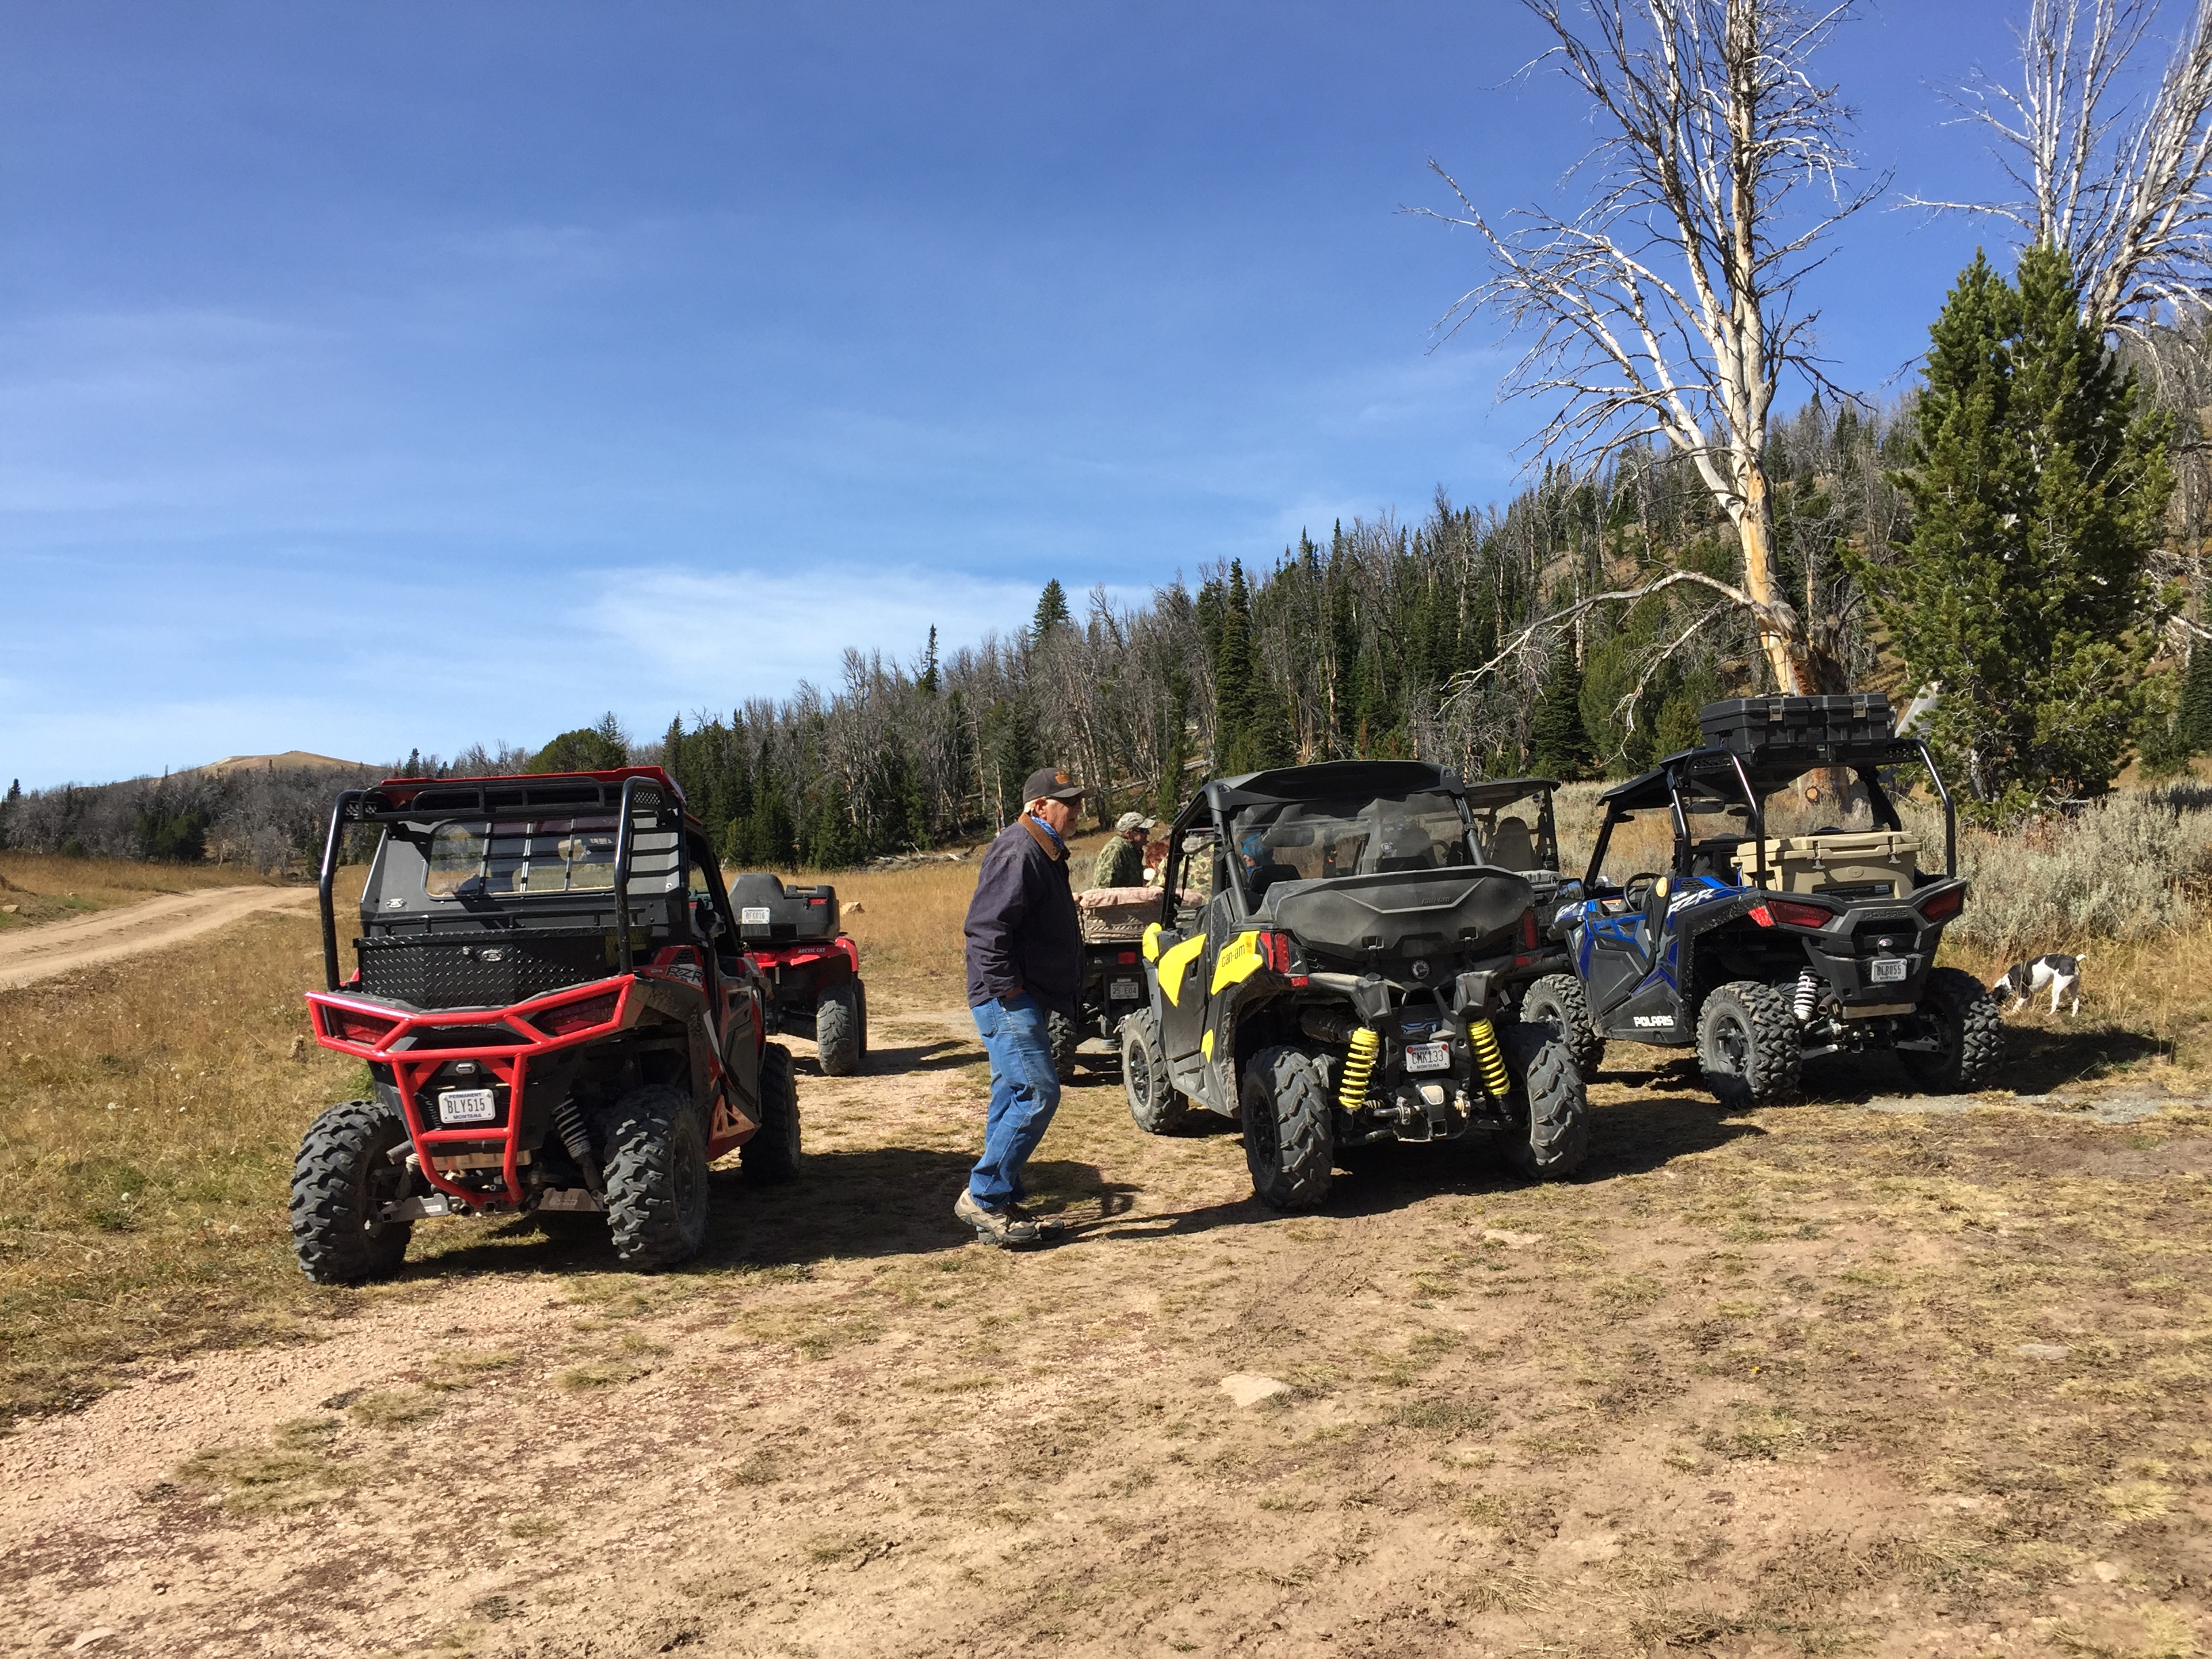 ATVs @ bathroom stop